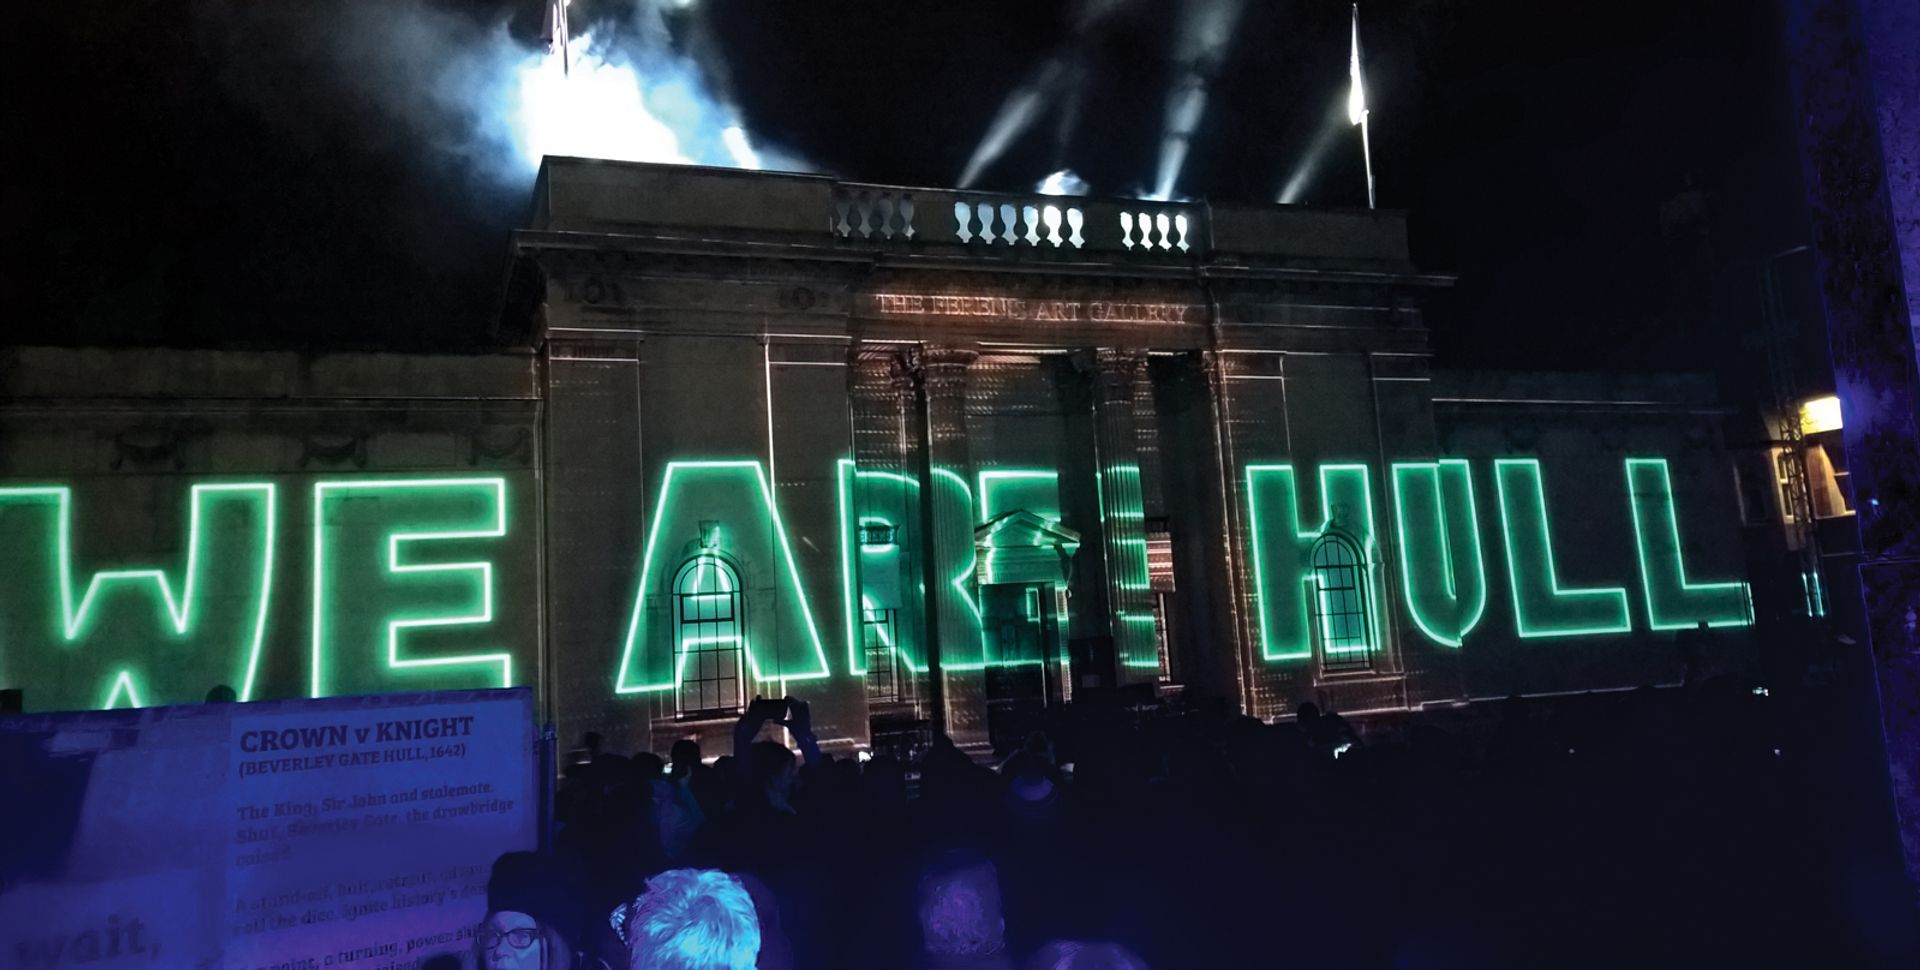 Zolst Balogh's installation We Are Hull was projected on to Ferens Art Gallery as part of the 2017 City of Culture year Chris Morgan